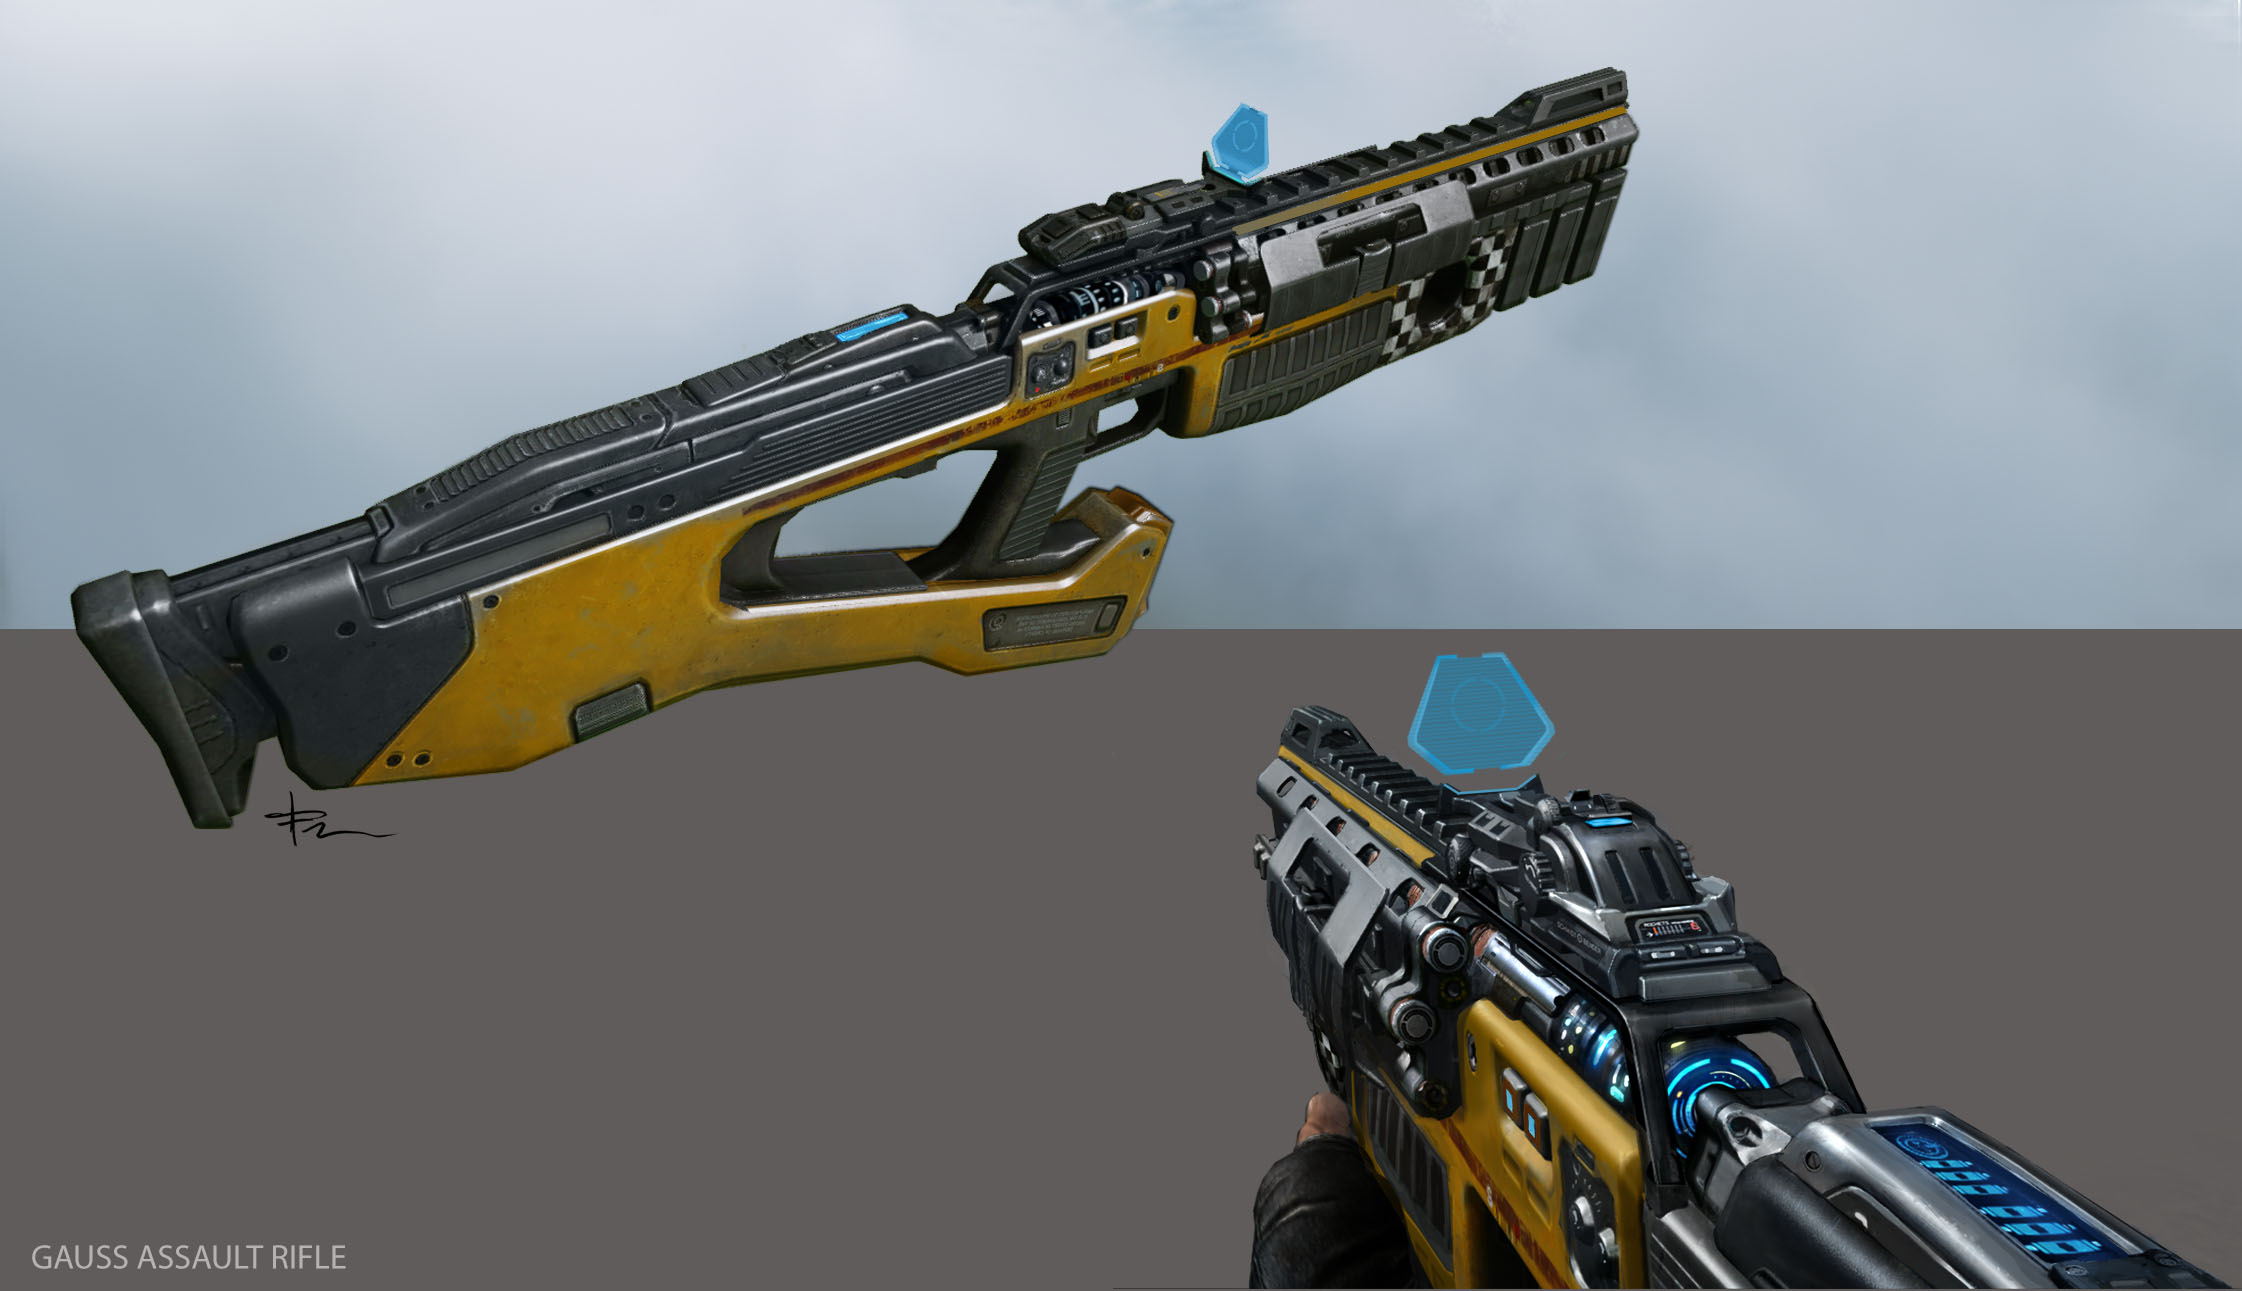 TJFRame-Art_Evolve_GaussAssaultRifleViews.jpg